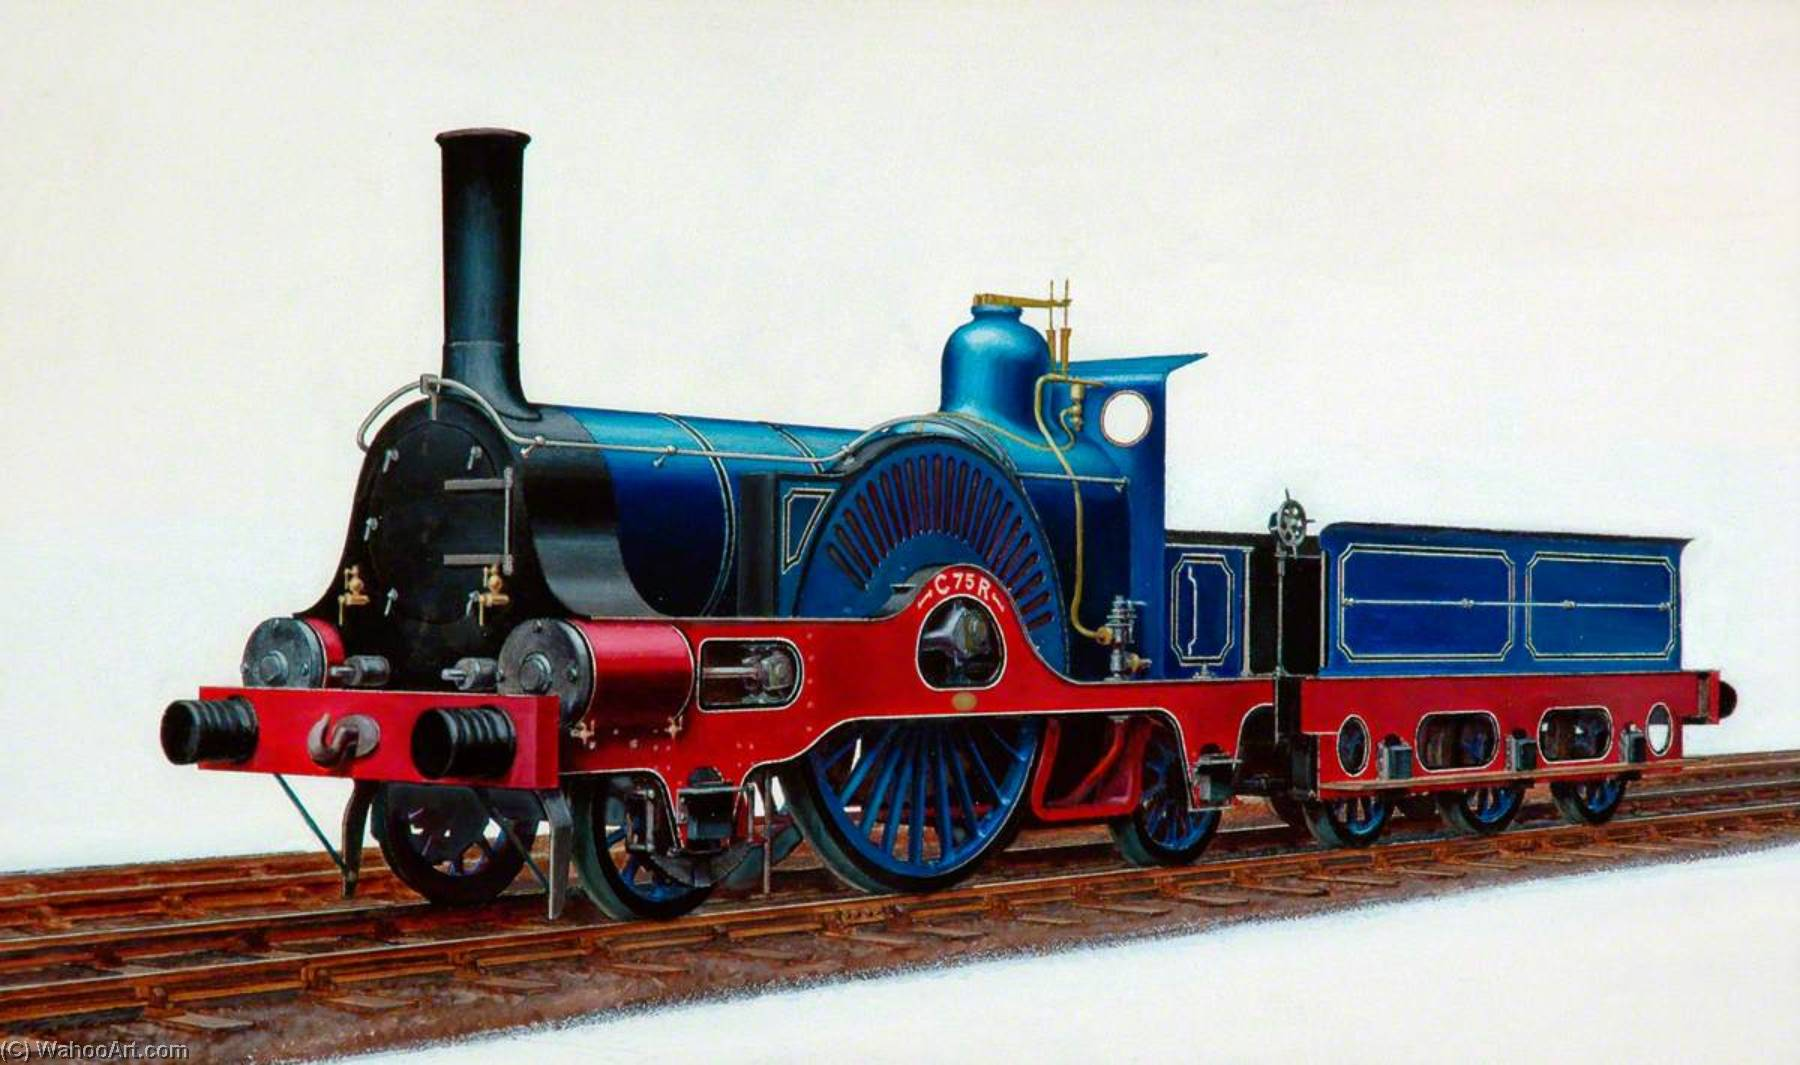 Caledoniano coche  2–2–2   locomotora  C75R  , aceite de Henry Maurice Whitcombe